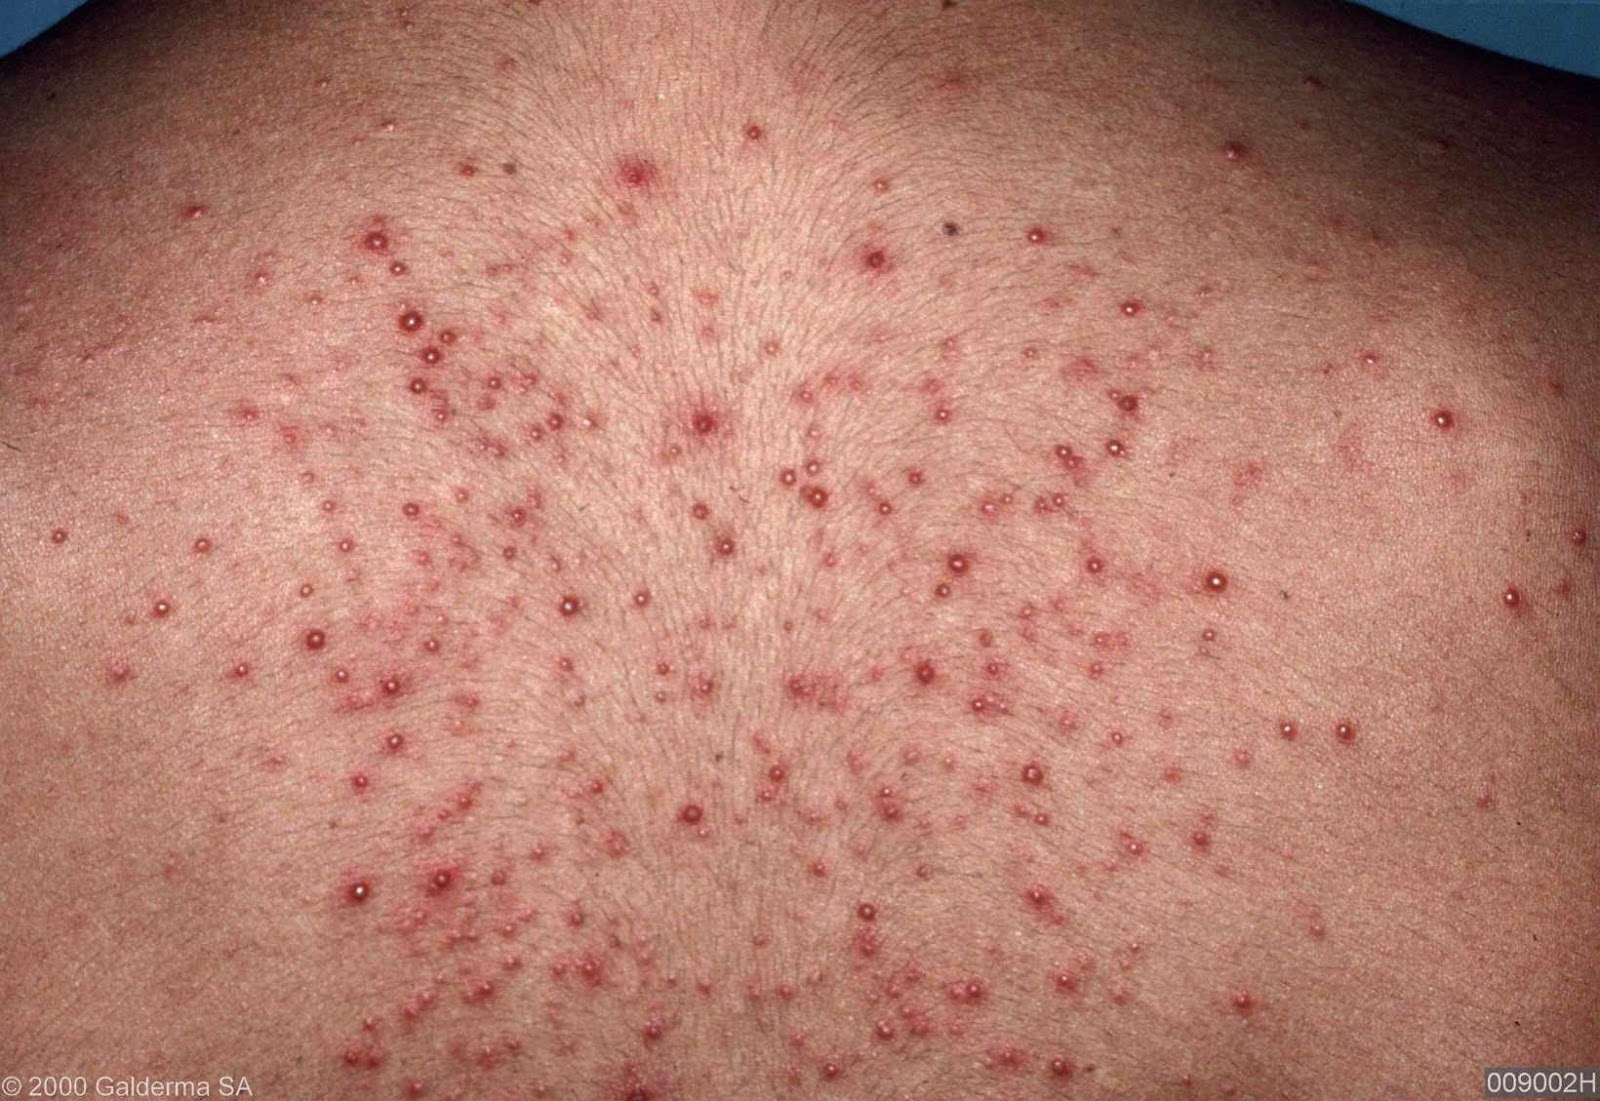 Hot Tub Rash ( Pseudomonas Folliculitis) - skinsight.com